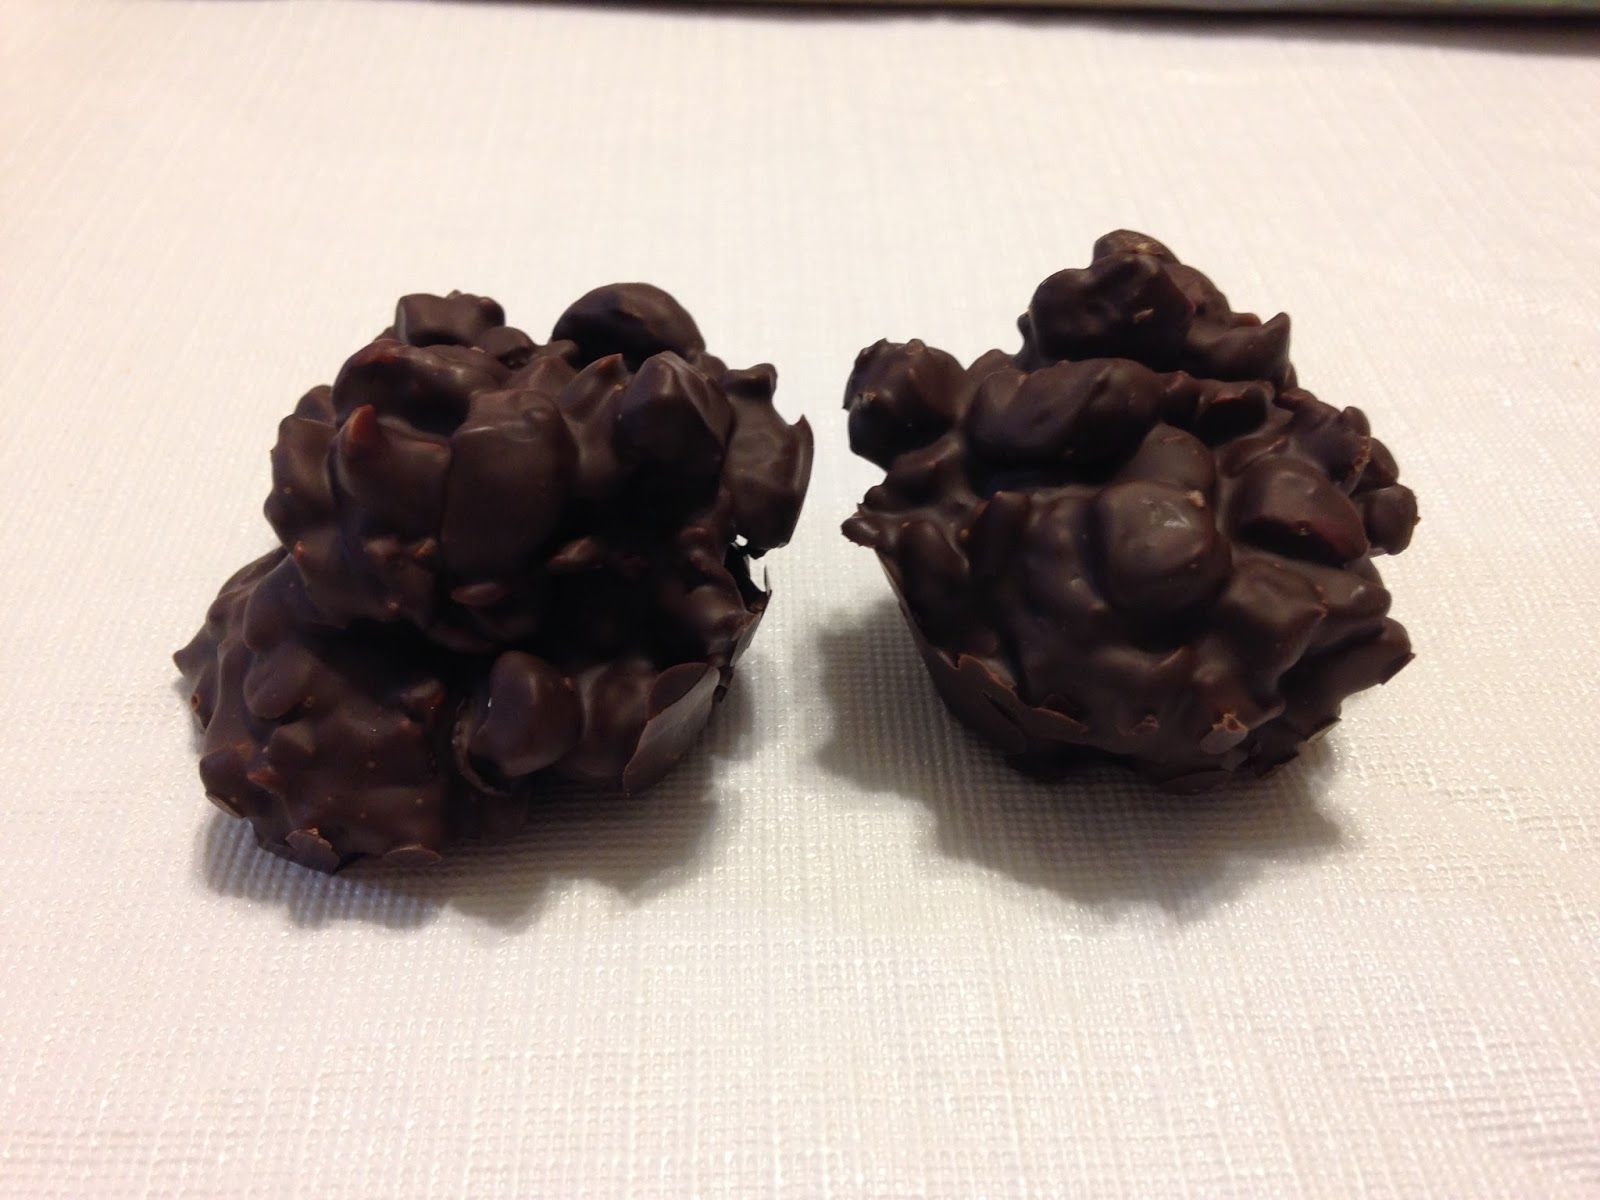 Super Simple Recipe for National Chocolate Covered Nut Day